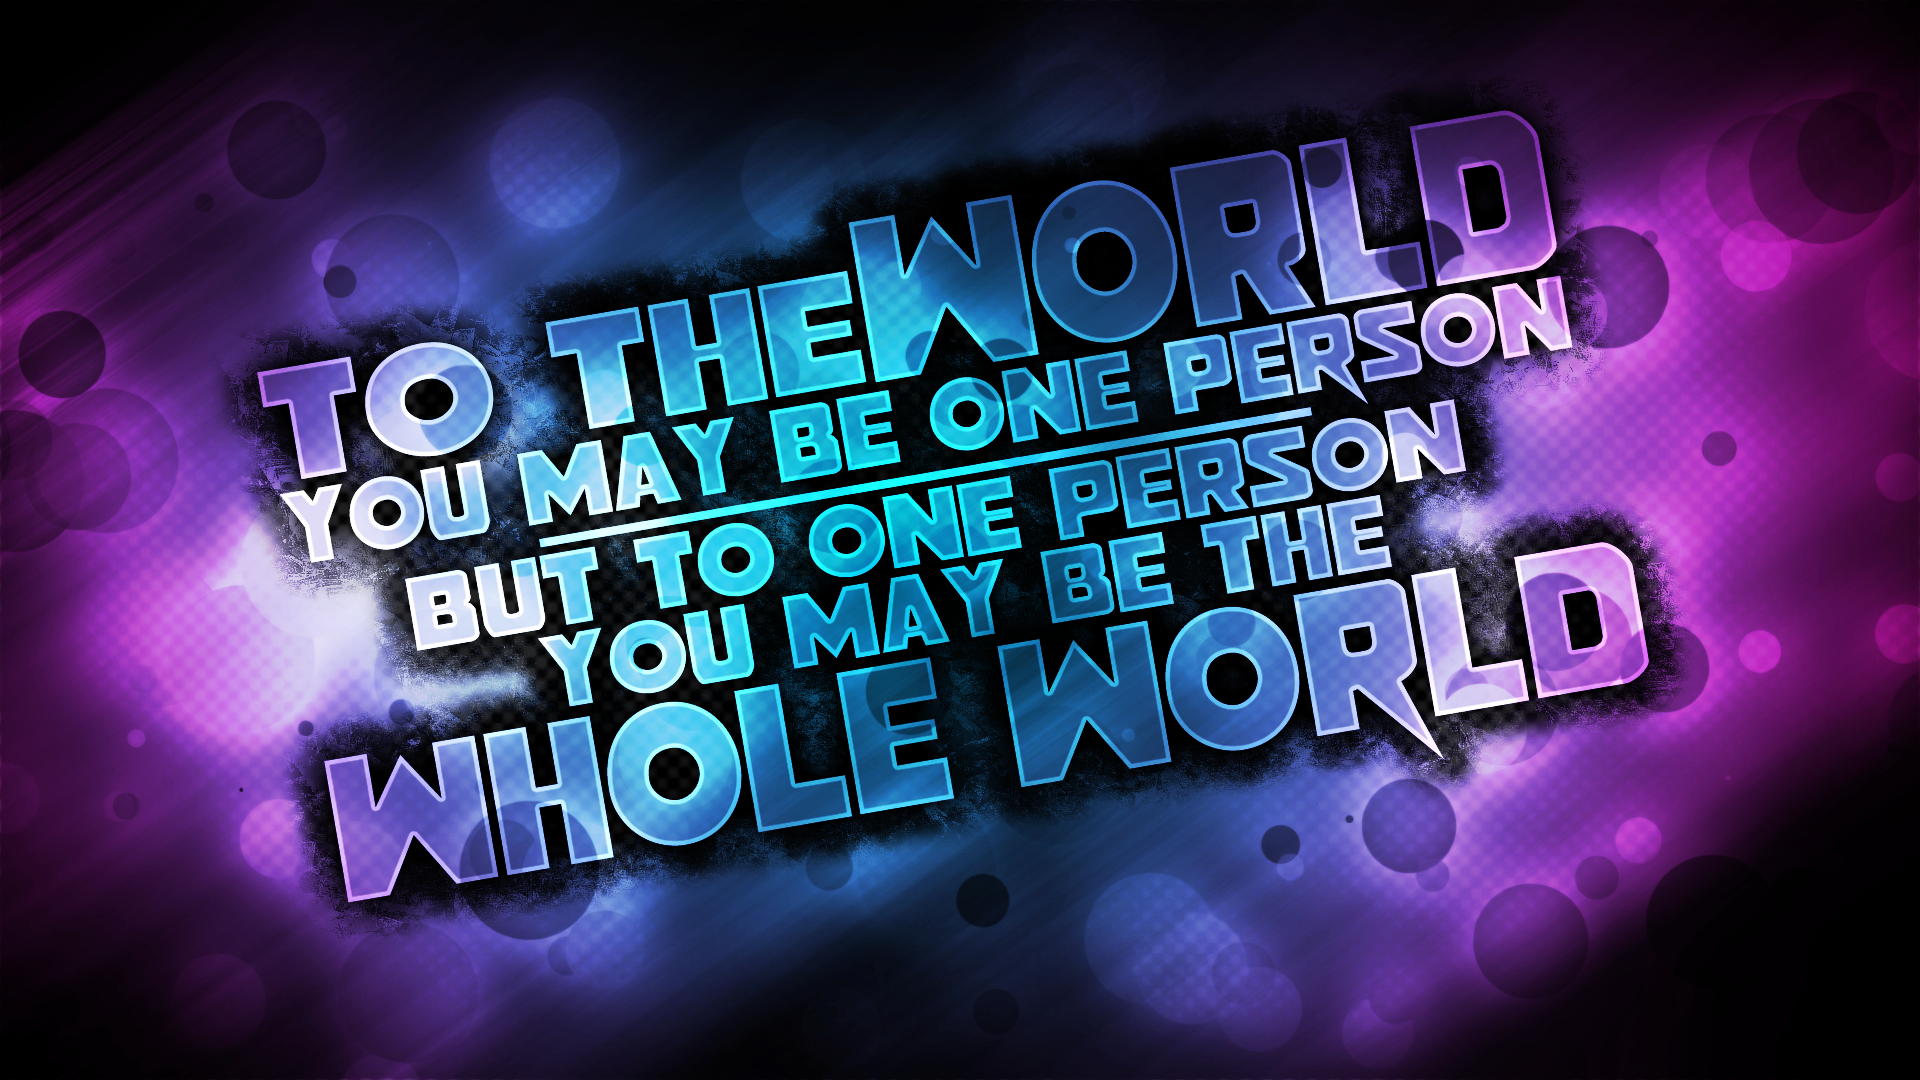 Hd wallpaper of love - Love Quotes Wallpapers Hd 215505